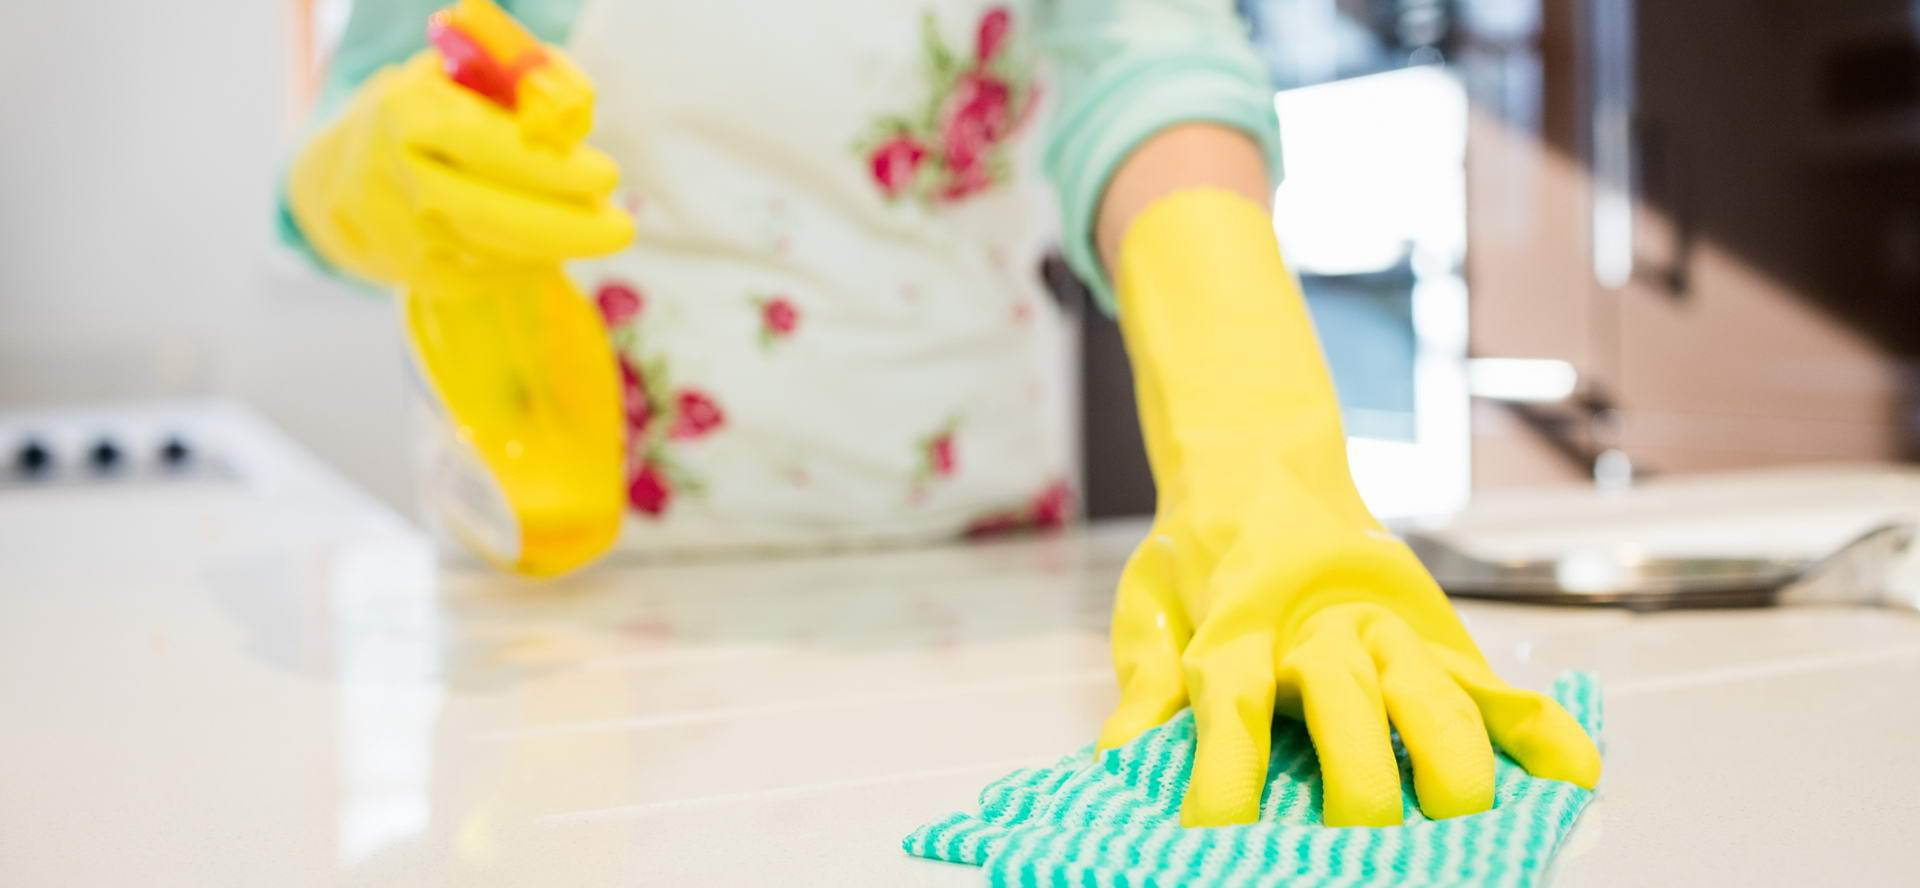 We will make your world spotless.